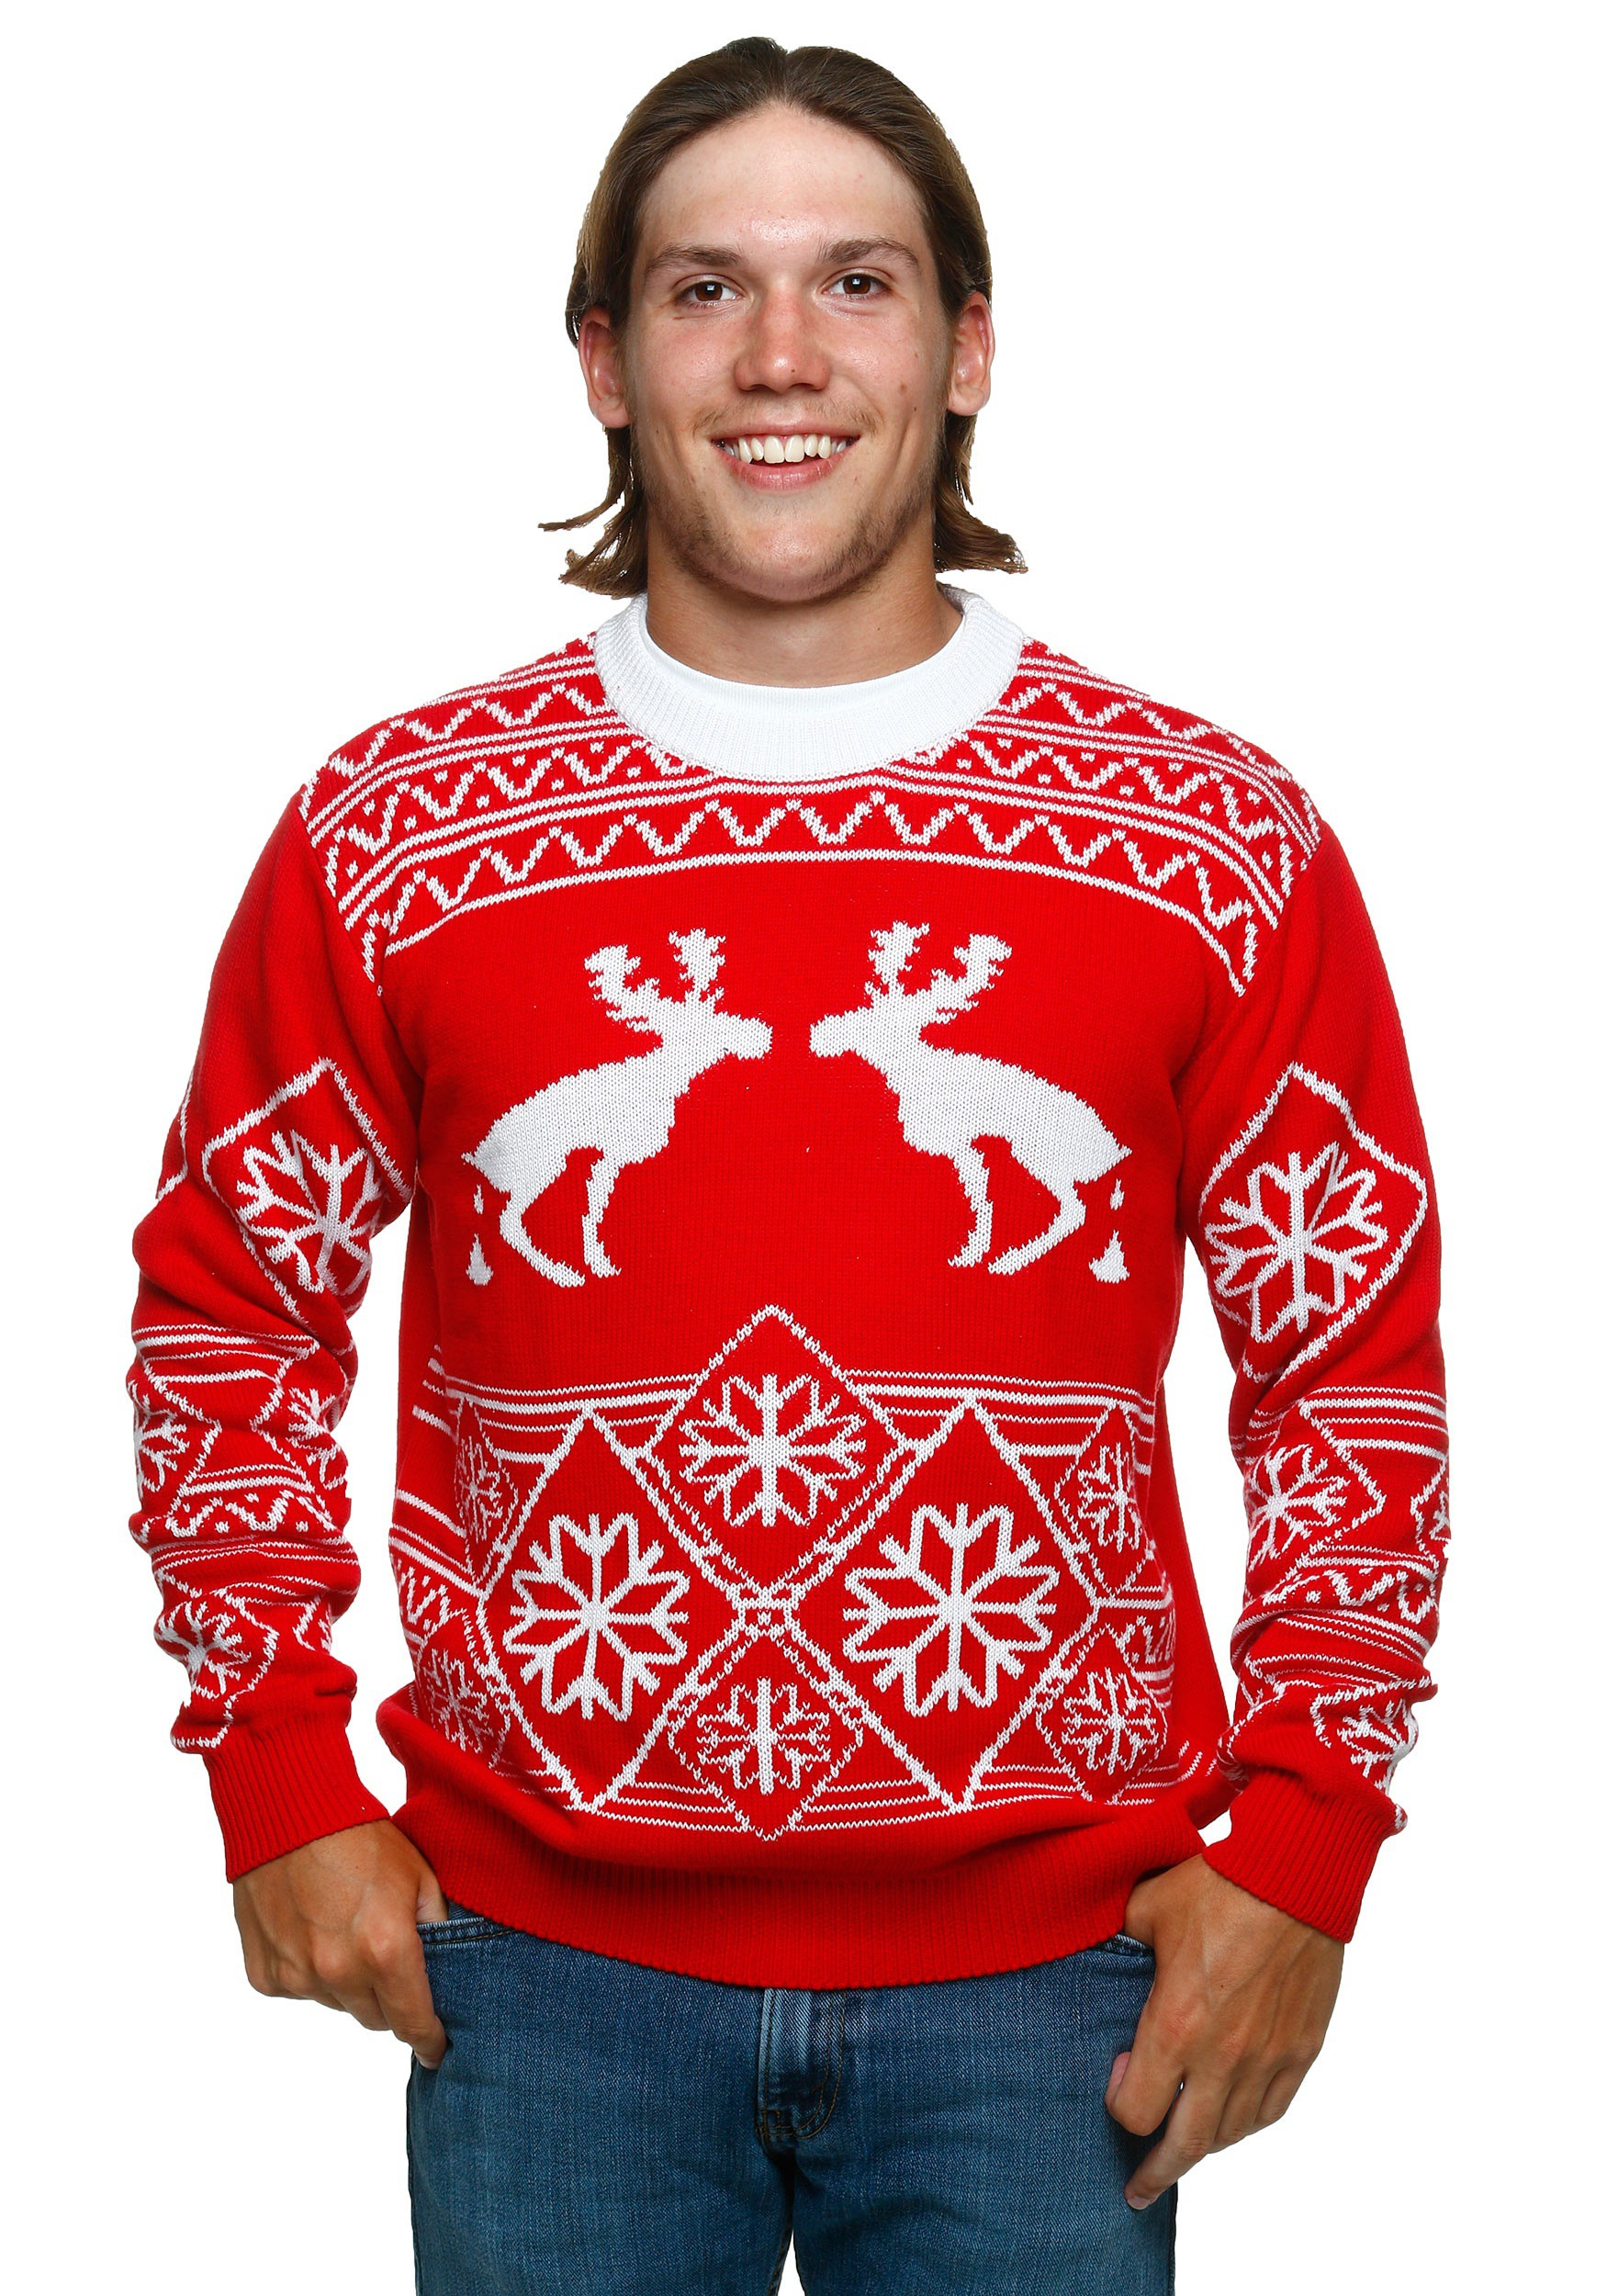 Images of tacky christmas sweaters